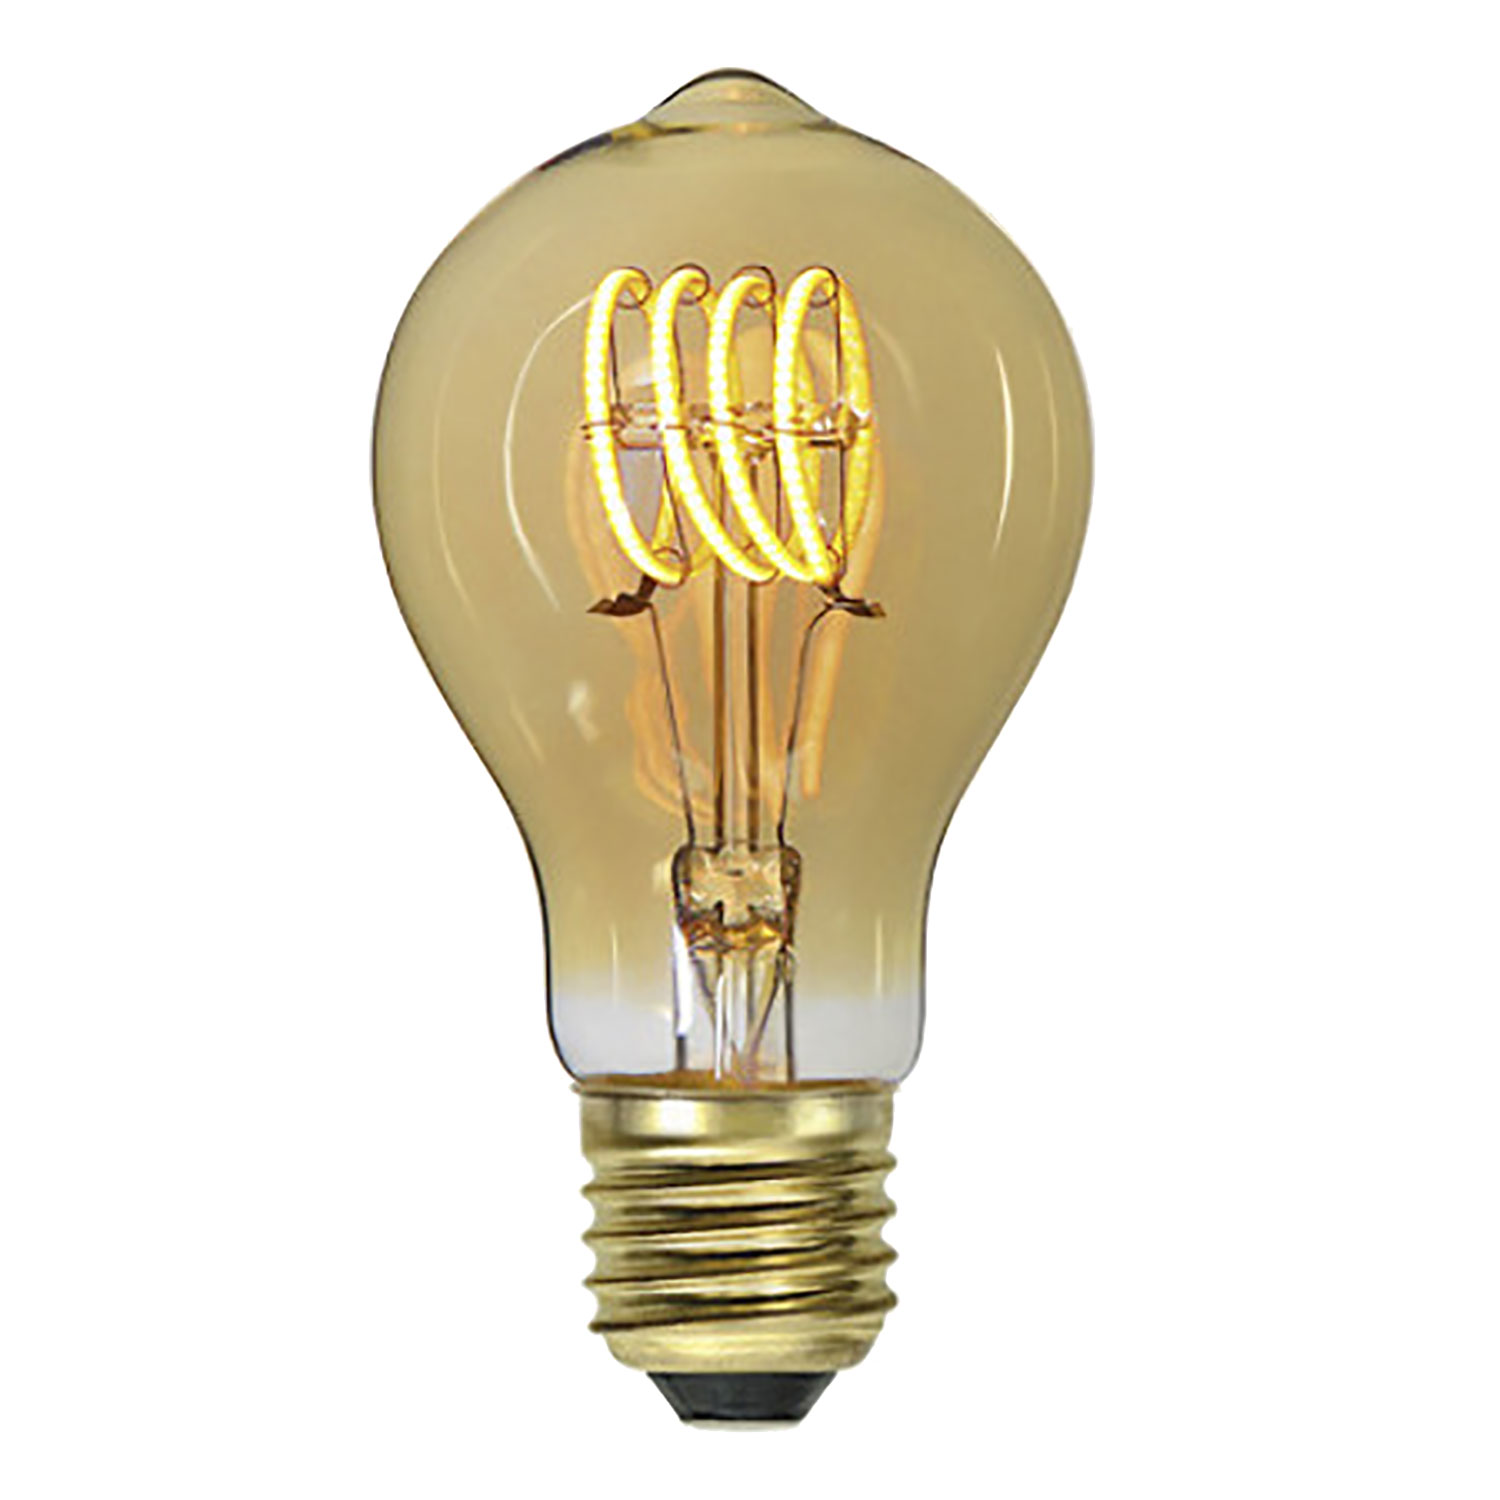 LED-lampa E27 A60 flexifilament, amber